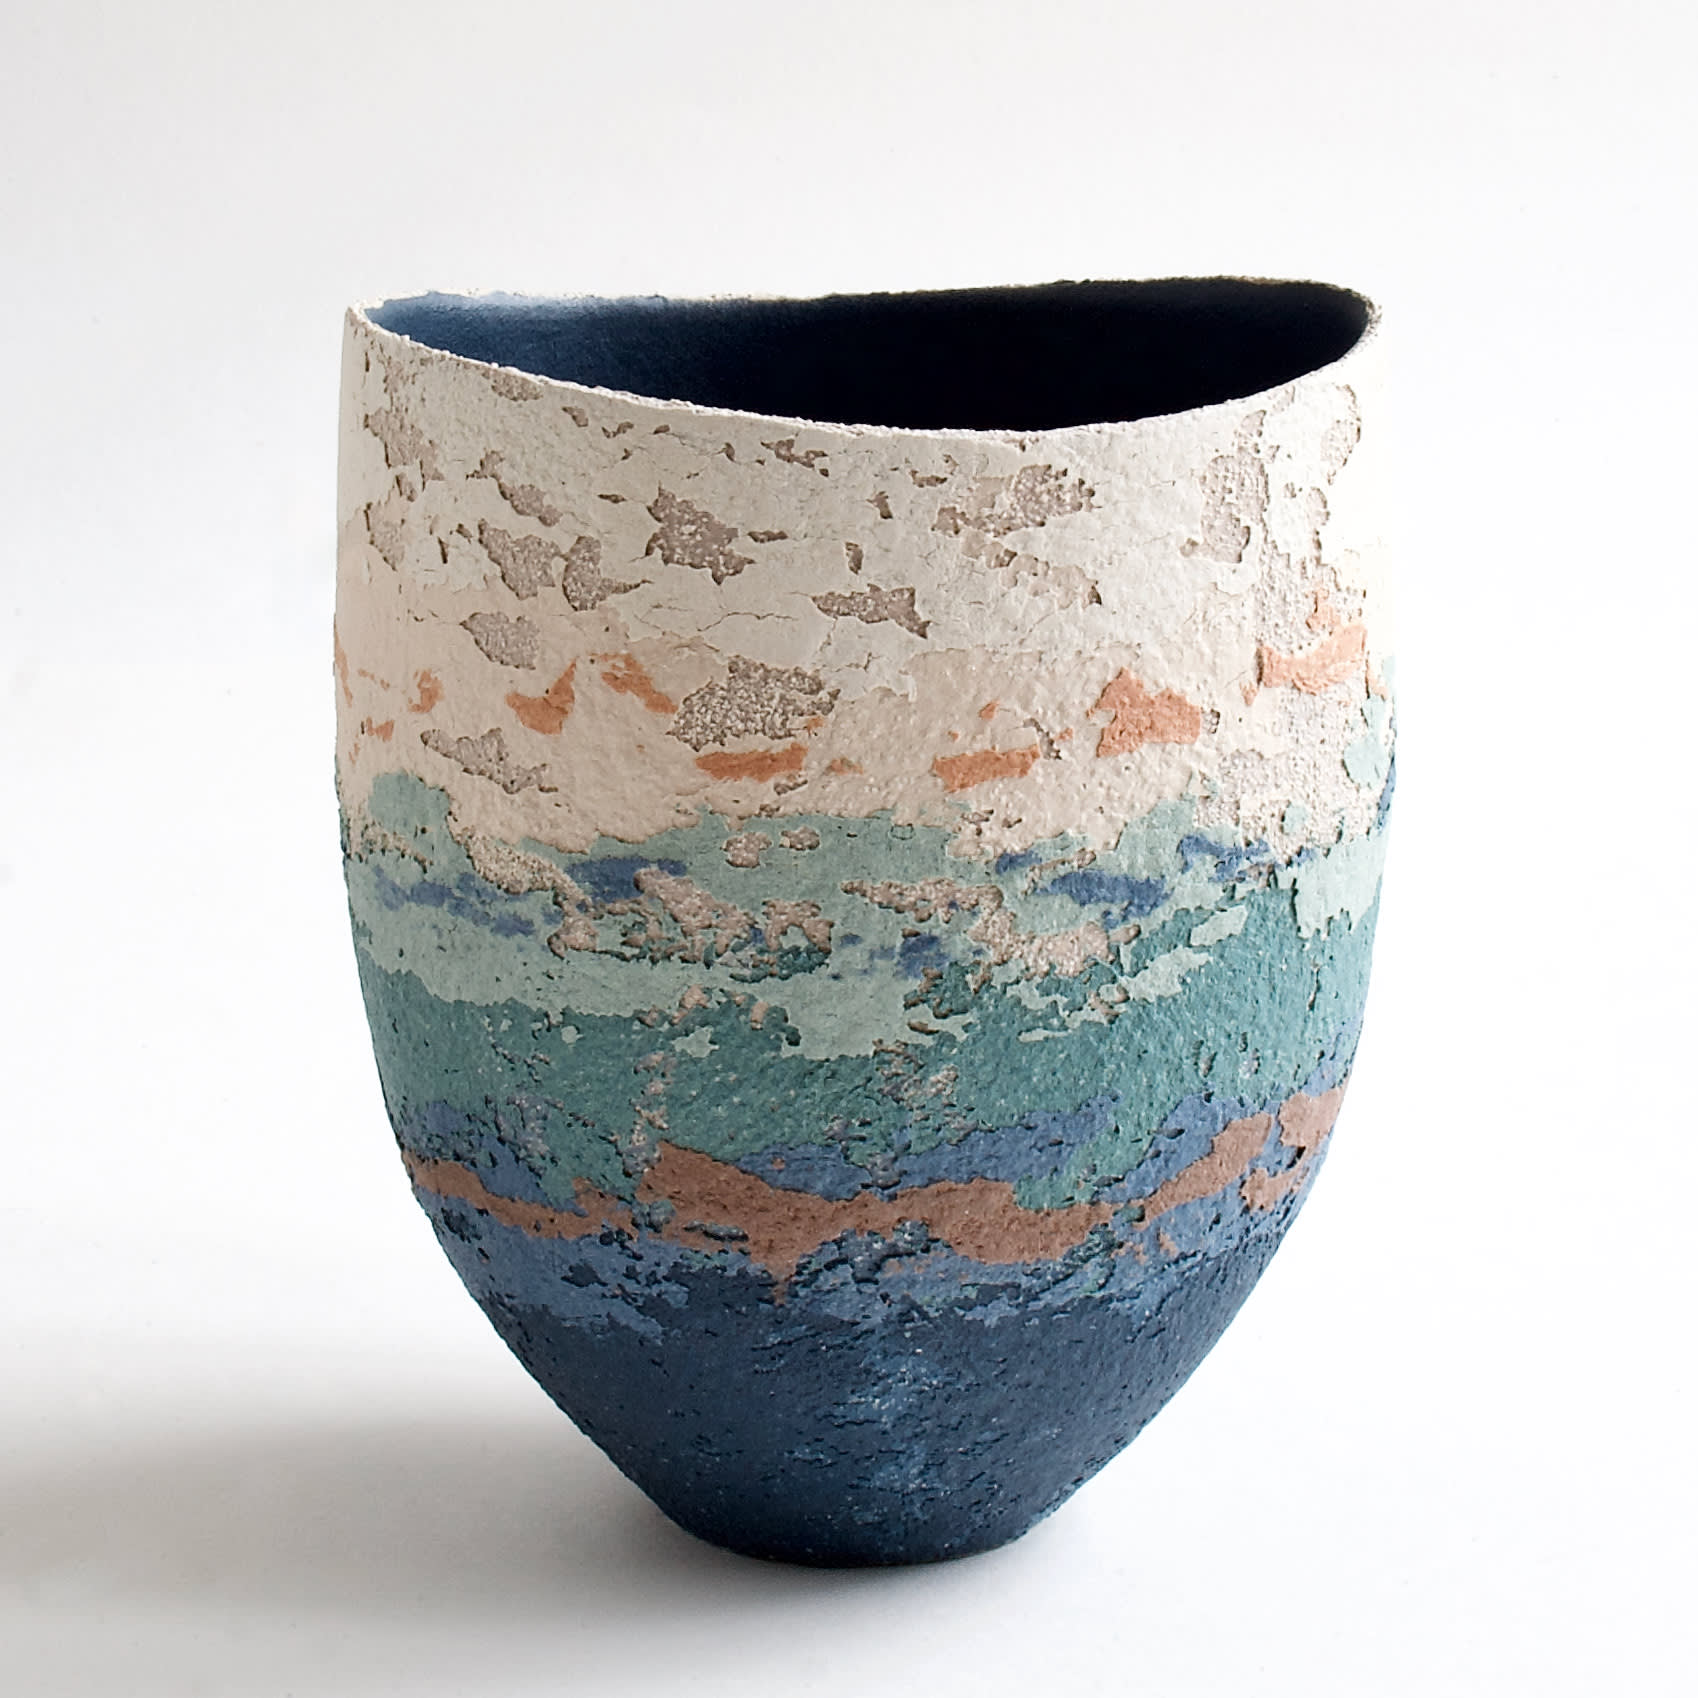 """<span class=""""link fancybox-details-link""""><a href=""""/artists/79-clare-conrad/works/8119-clare-conrad-vessel-scooped-rim-navy-interior-2021/"""">View Detail Page</a></span><div class=""""artist""""><strong>Clare Conrad</strong></div> b. 1948 <div class=""""title""""><em>Vessel, scooped rim, navy interior</em>, 2021</div> <div class=""""medium"""">wheel-thrown stoneware </div> <div class=""""dimensions"""">h. 15.5 cm </div><div class=""""copyright_line"""">Own Art: £27.50 x 10 Months, 0% APR</div>"""